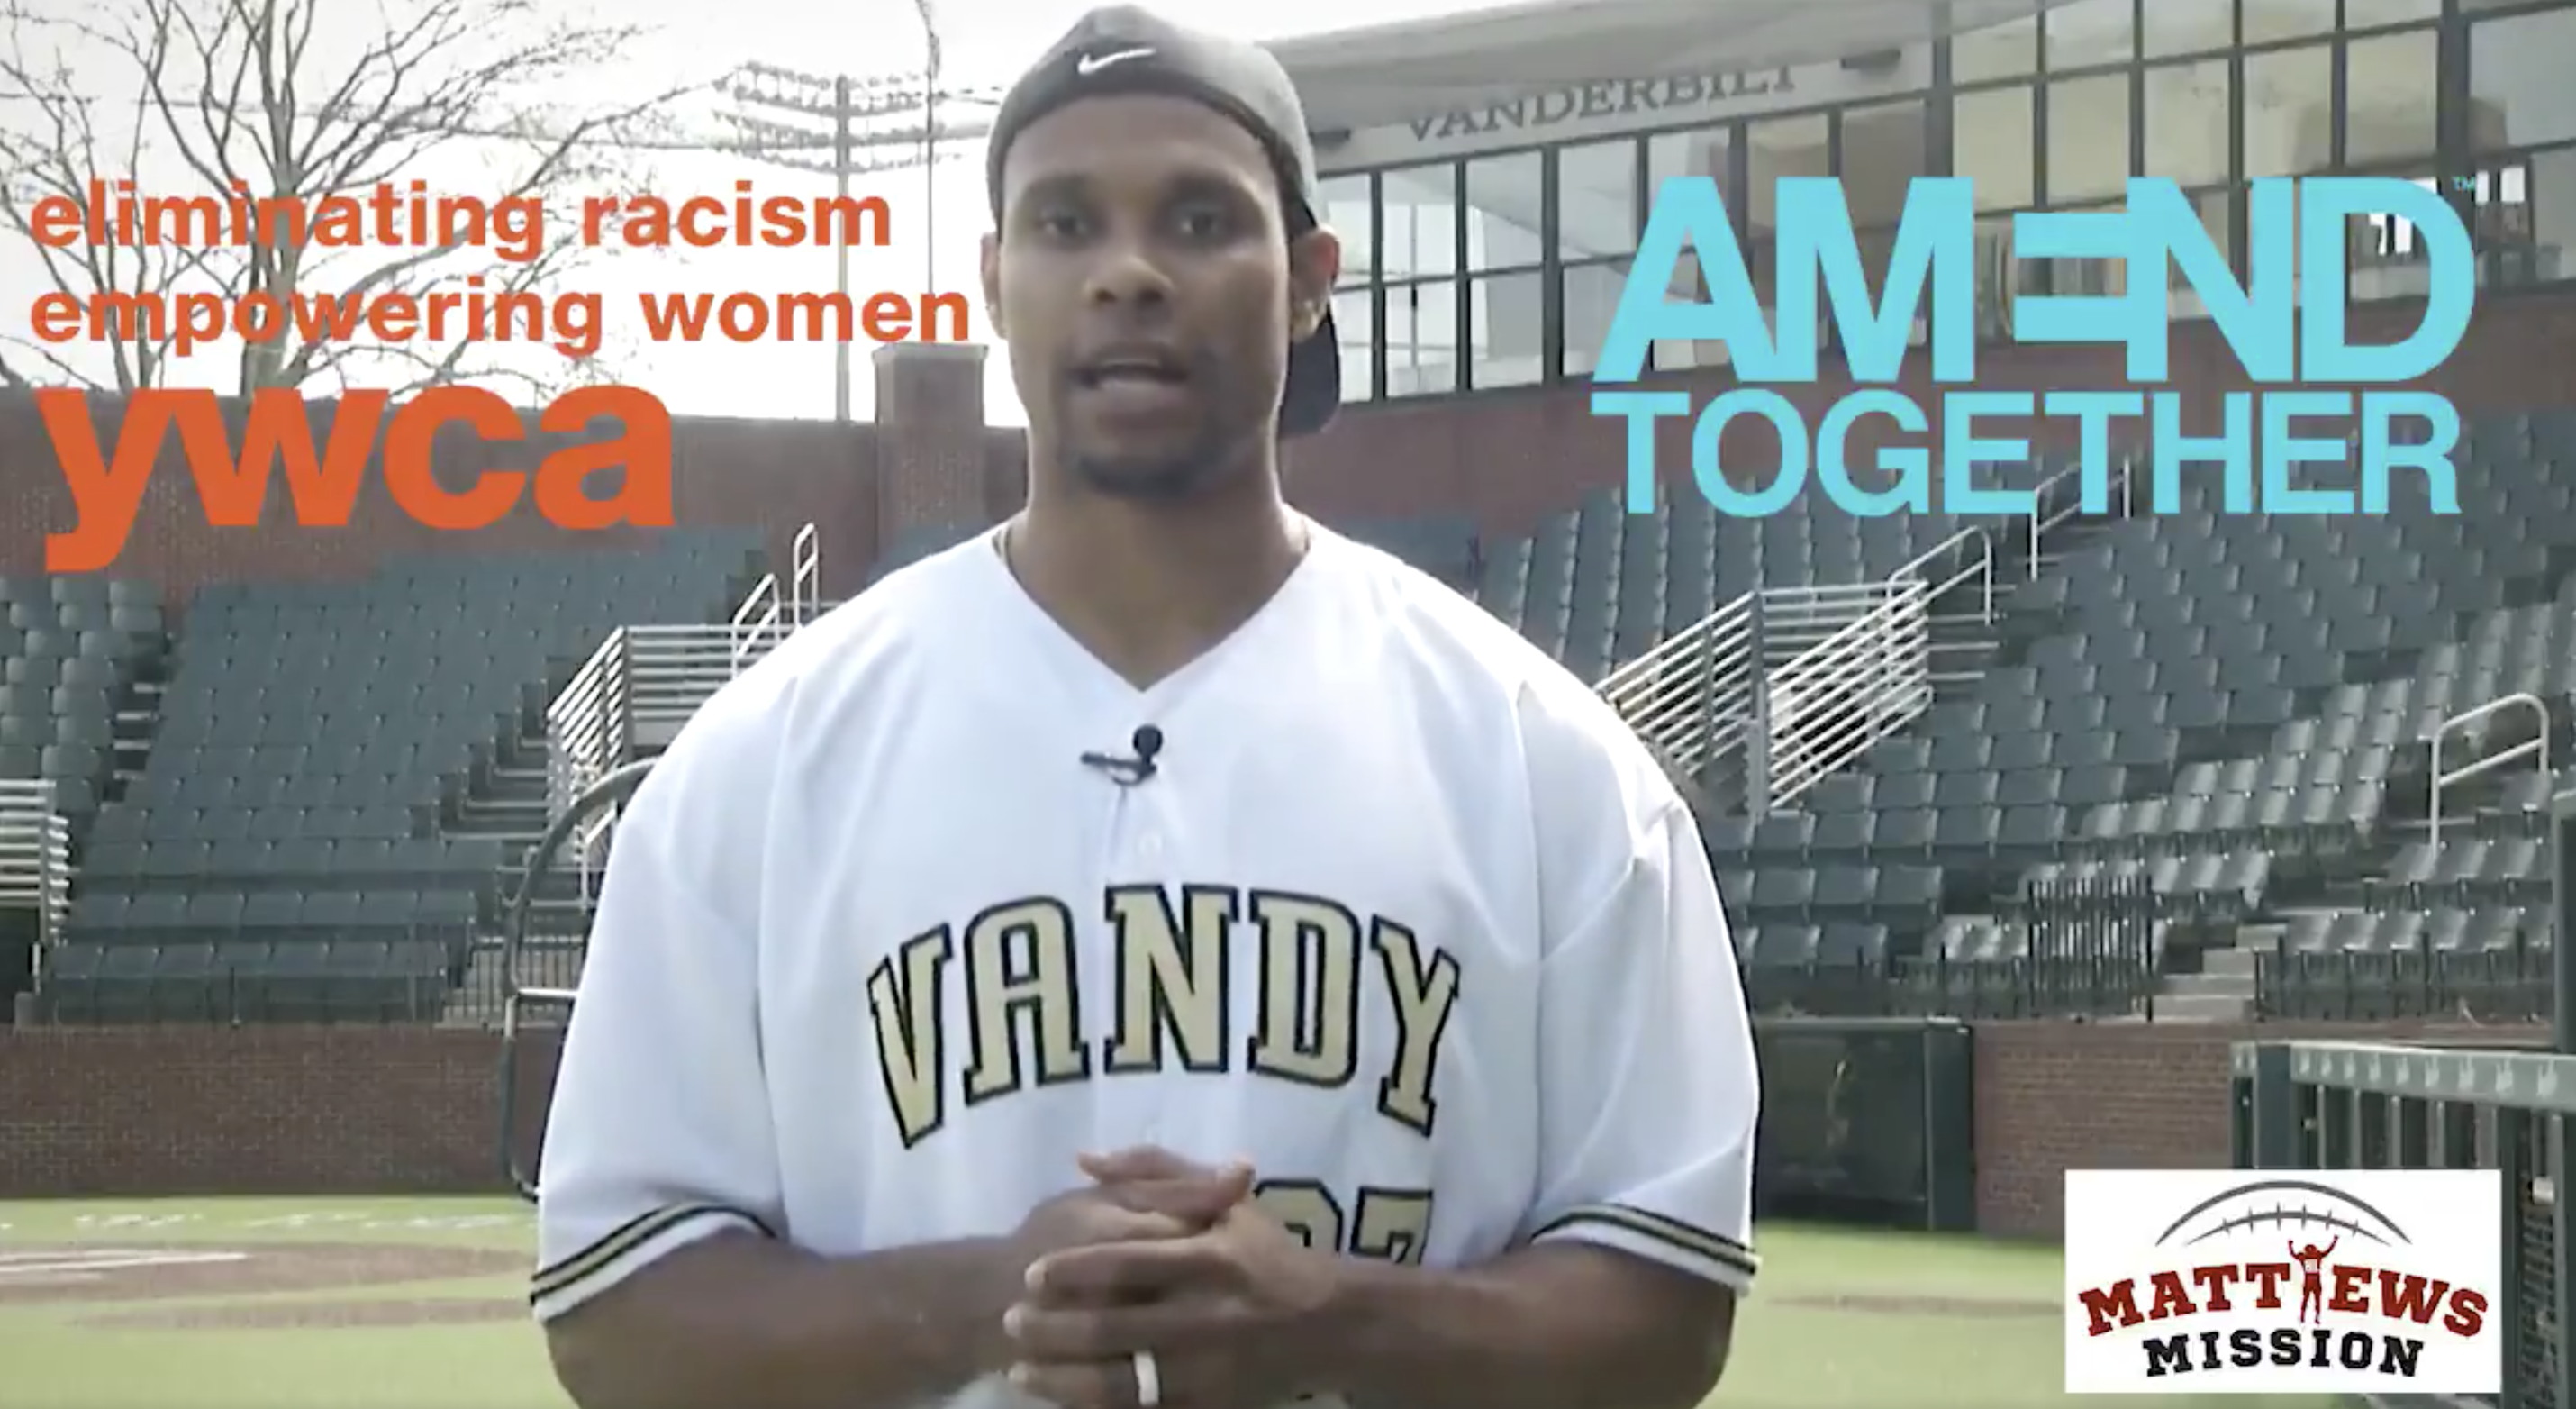 Commodore Conversation: Jordan Matthews, Shan Foster on the Vanderbilt Legends Charity Softball Game